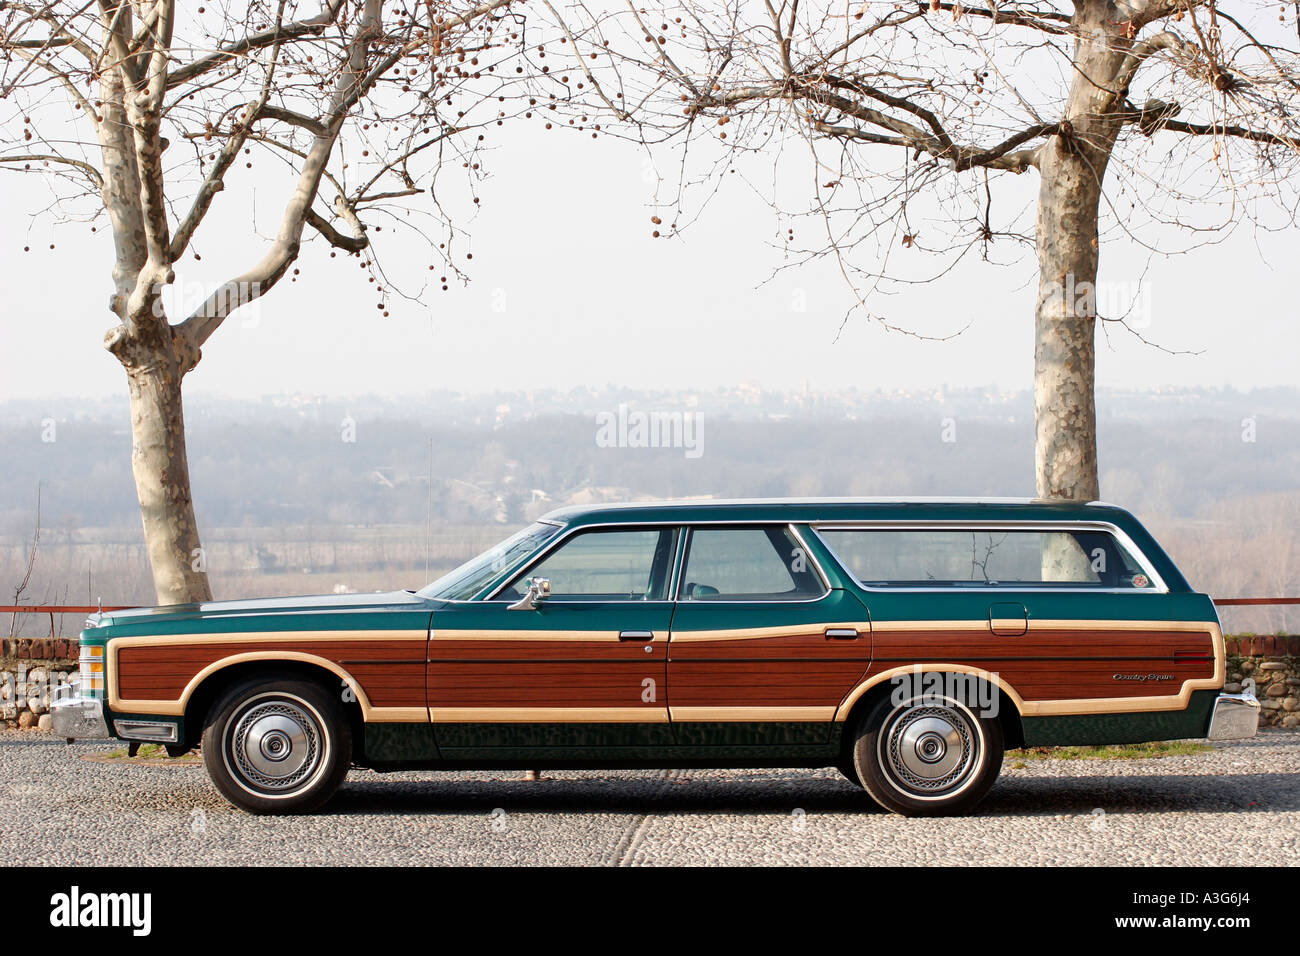 Ford Country Squire Station Wagon Stock Photos 1954 Ltd 1977 Image